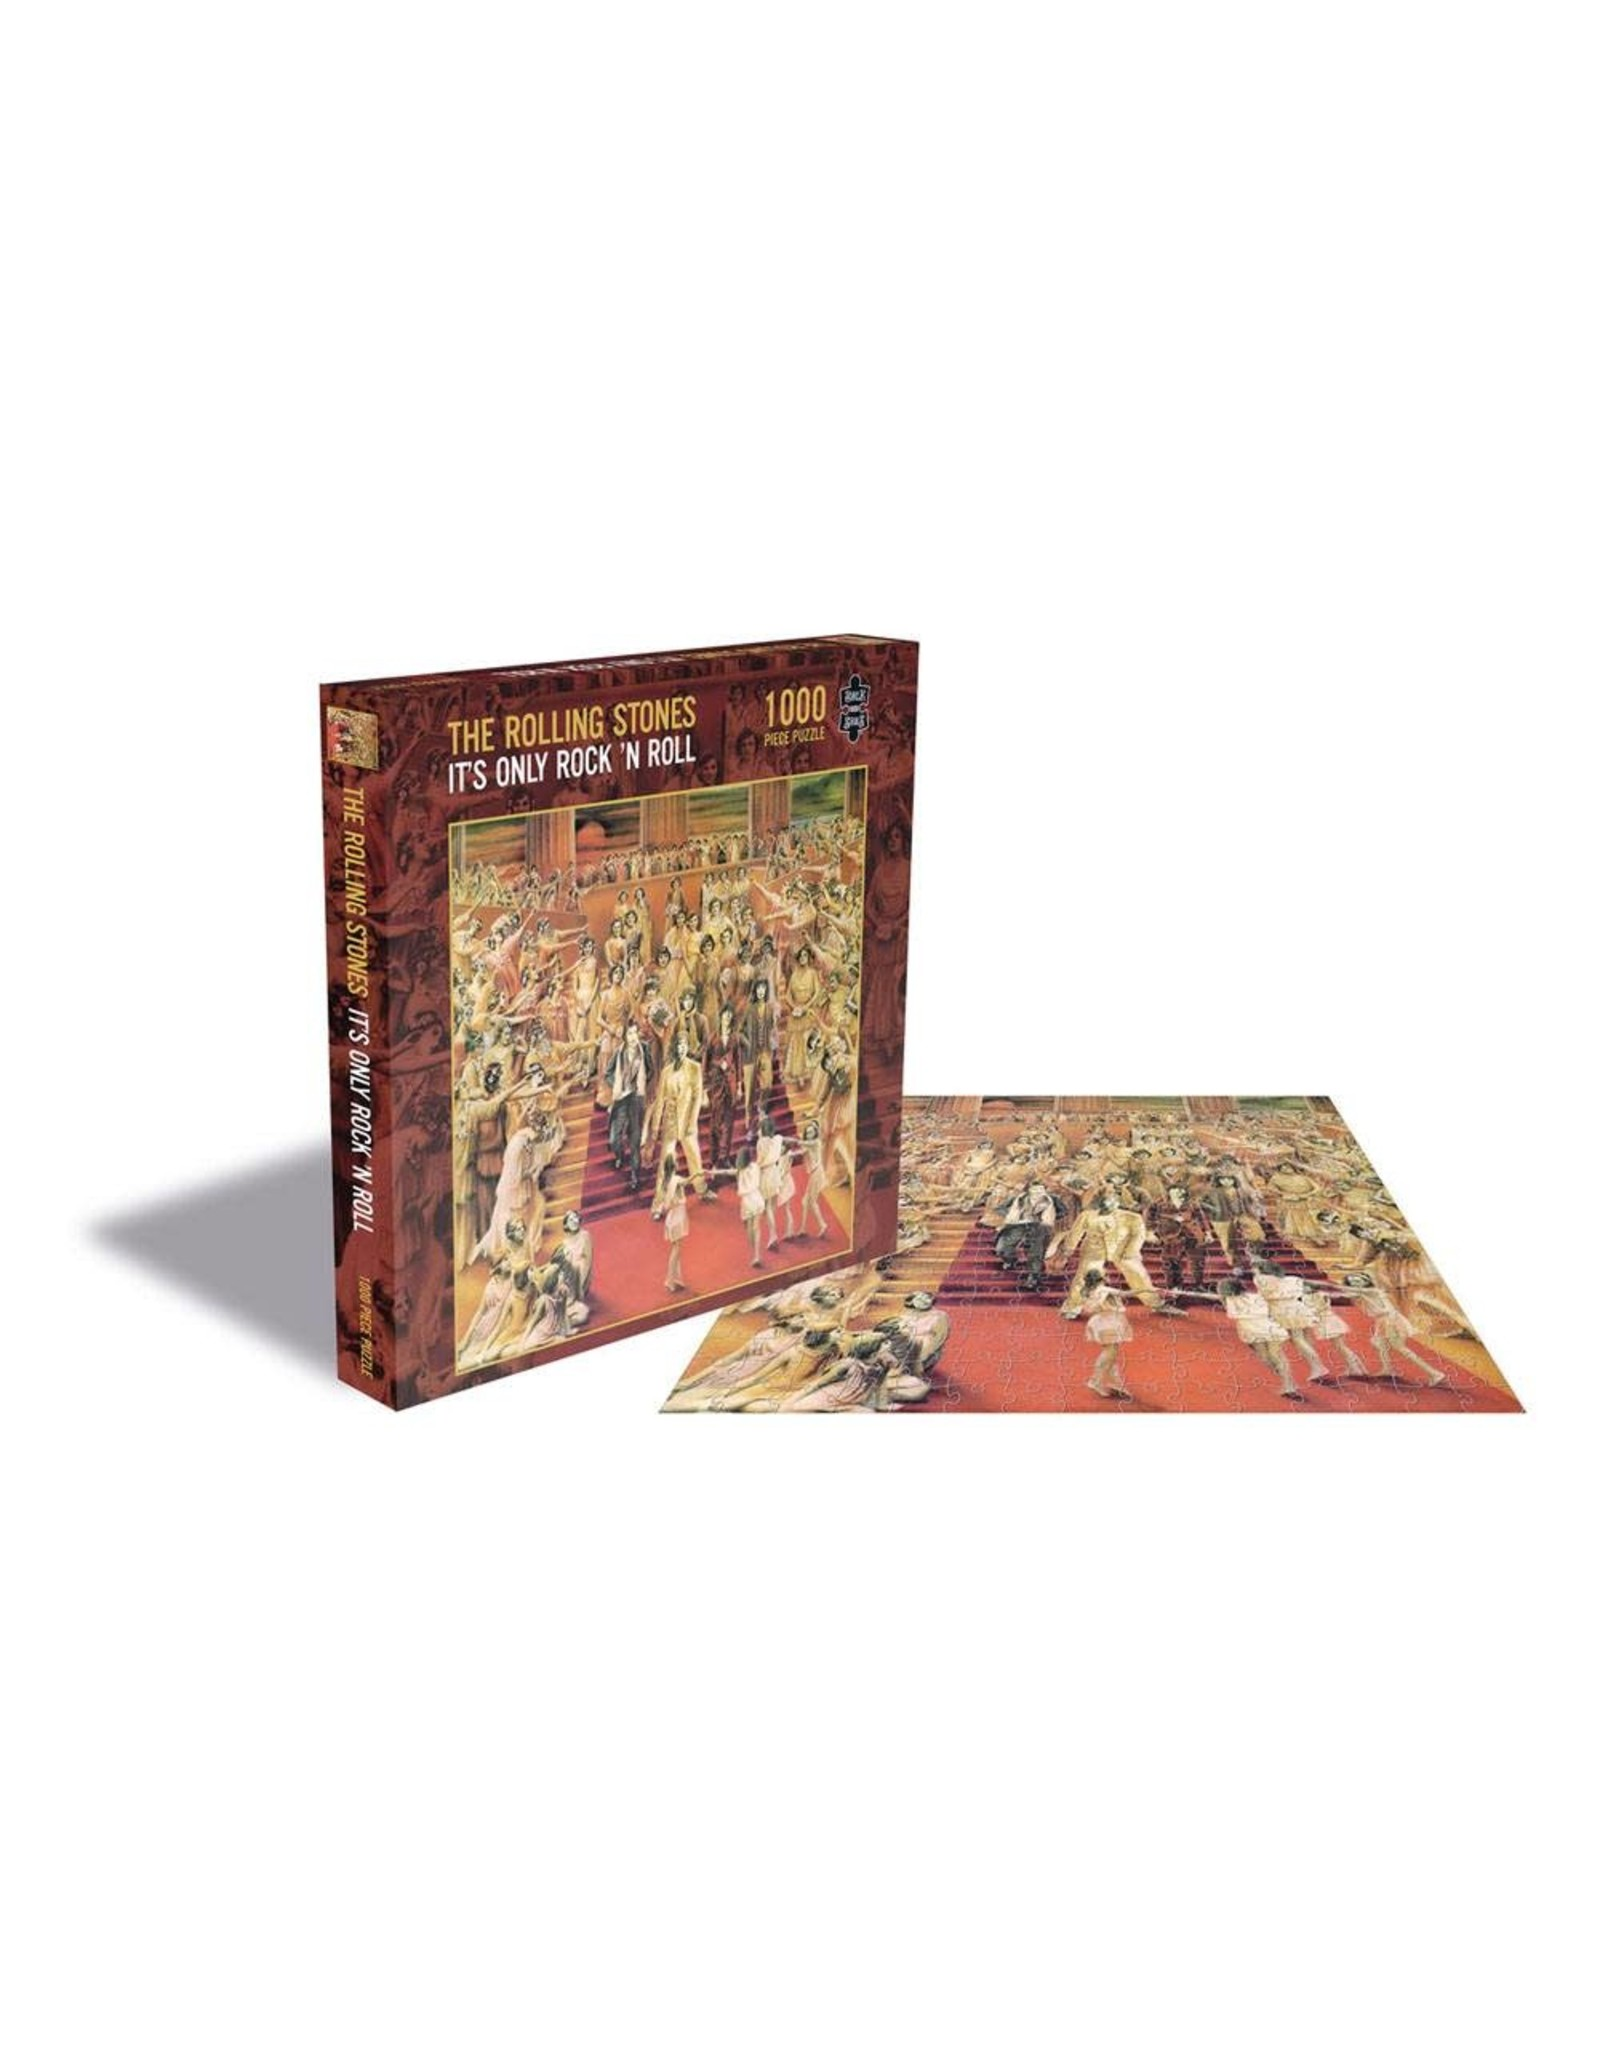 PHD Merchandise THE ROLLING STONES Rock Saws Jigsaw Puzzle 1000P - It´s Only Rock N´Roll